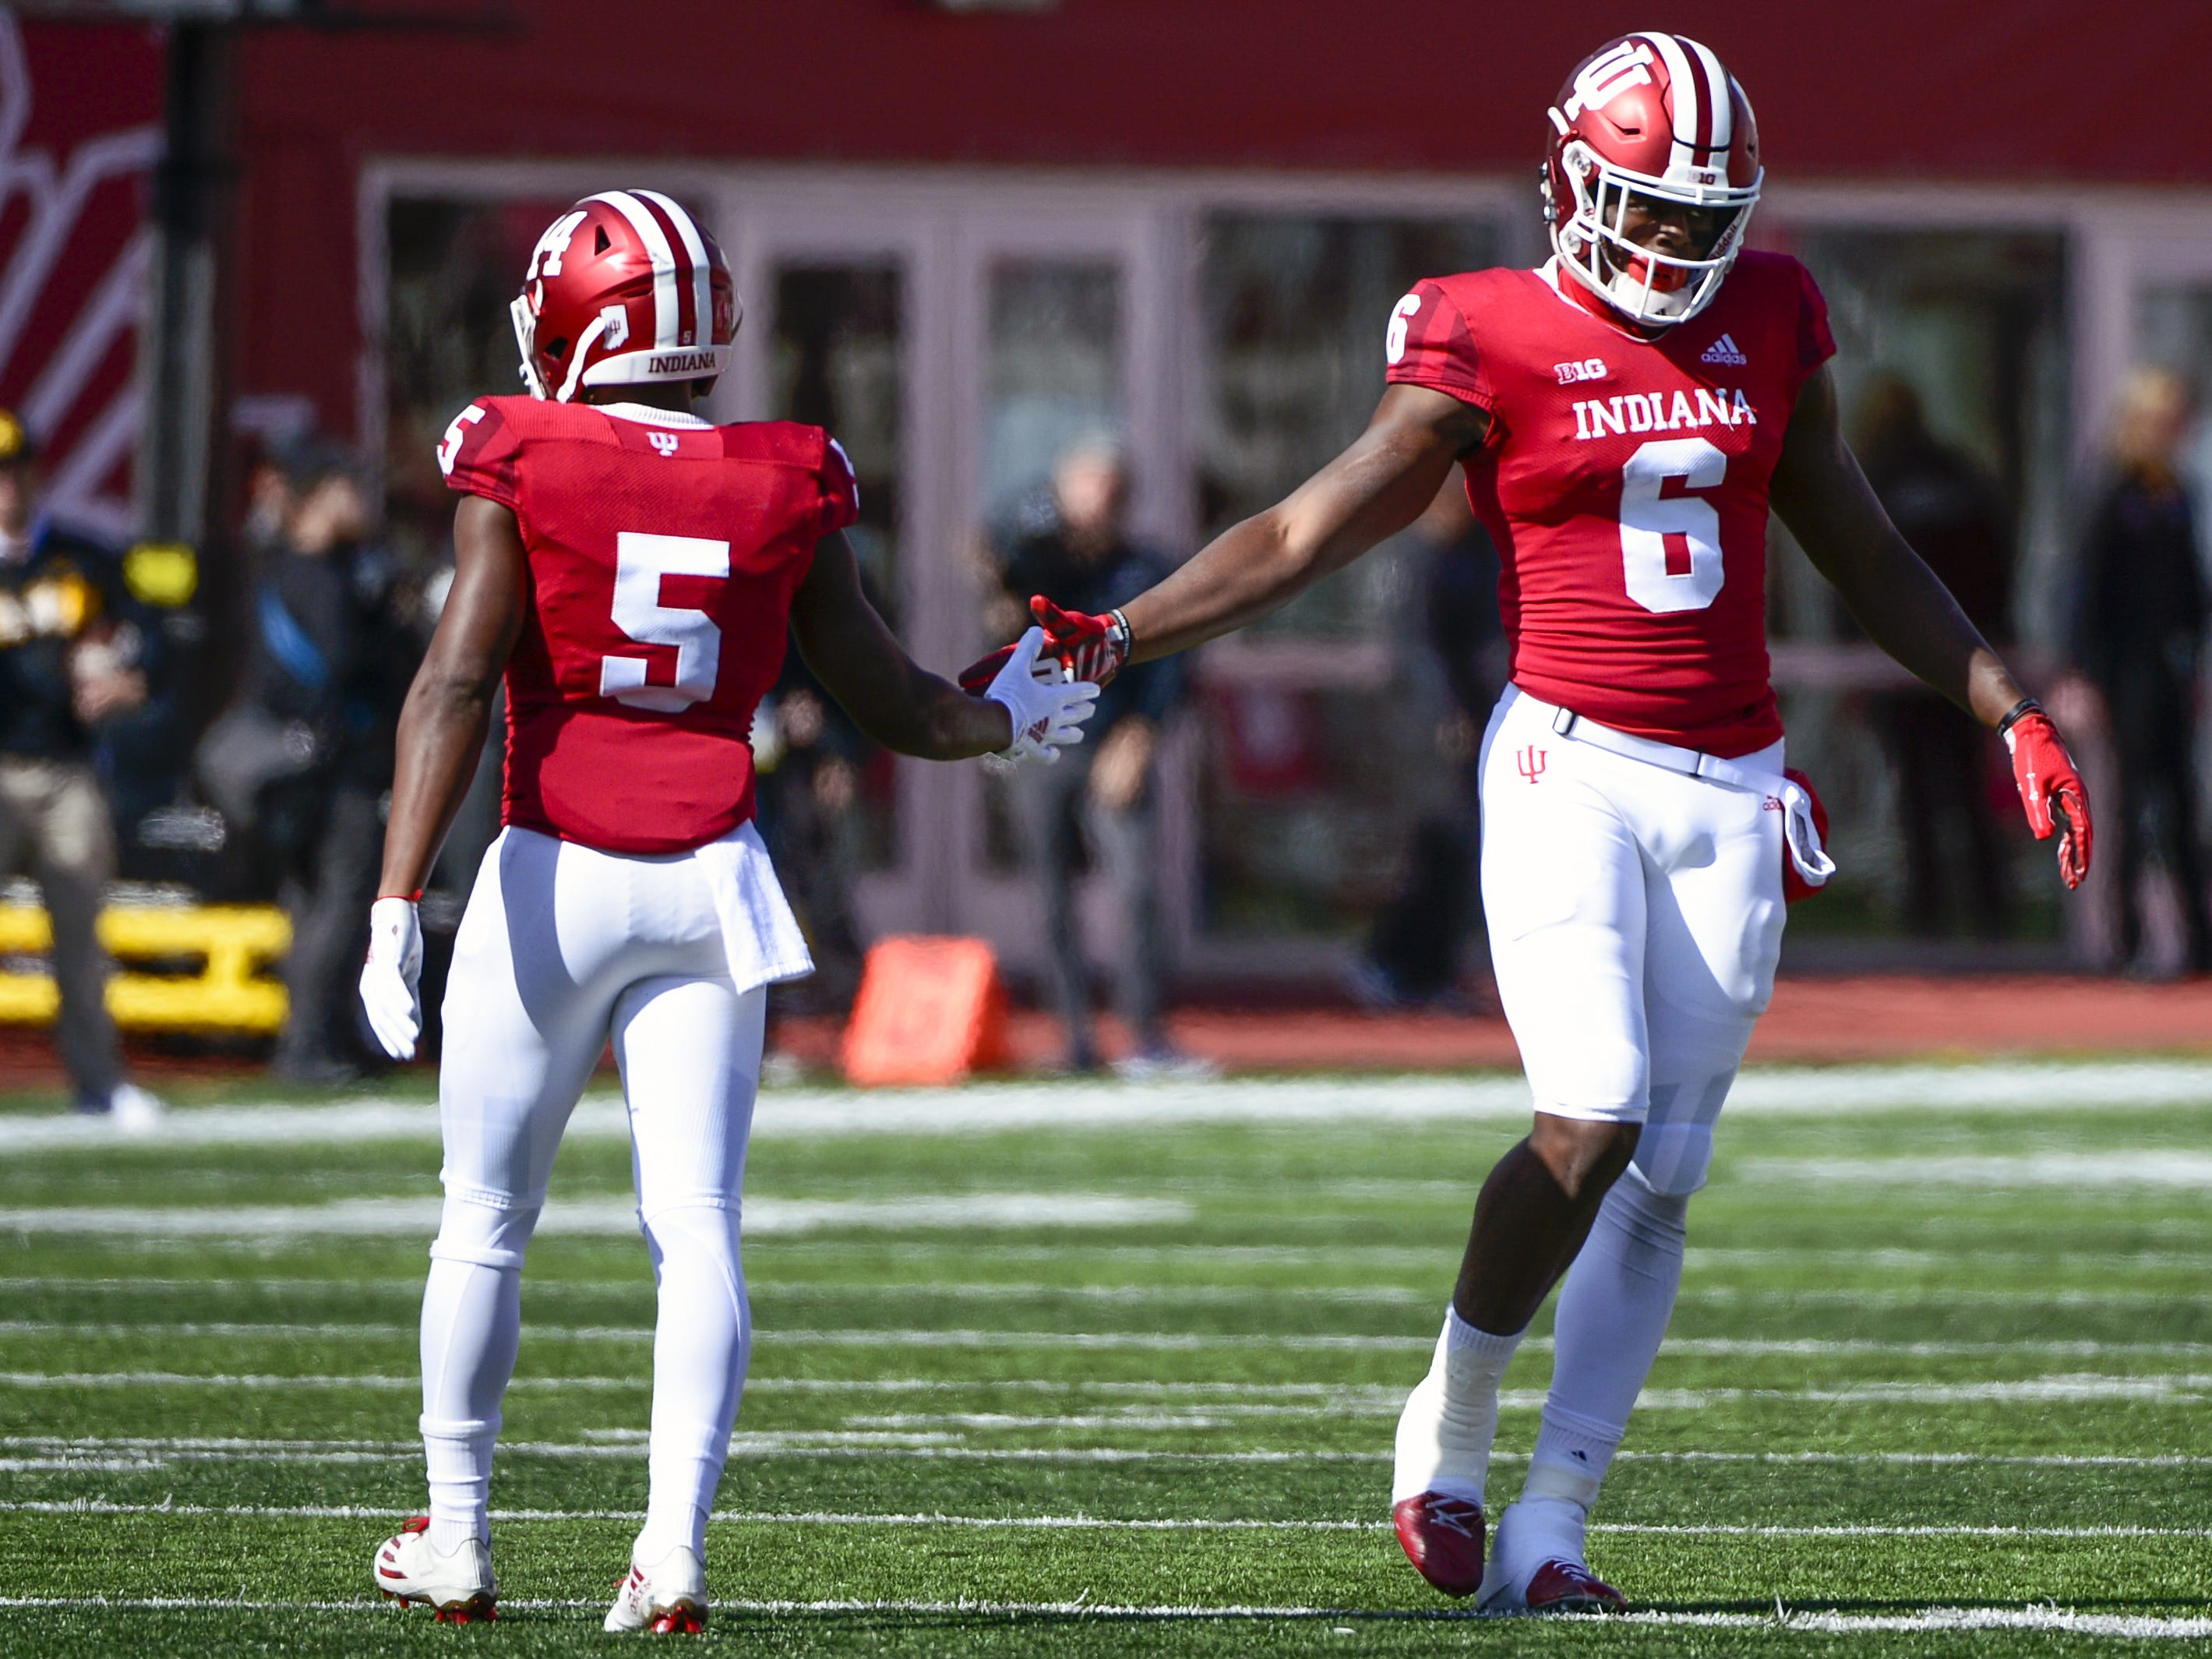 Indiana Hoosiers wide receivers J-Shun Harris II (5) and Donovan Hale (6) high five during the game against Iowa at Memorial Stadium in Bloomington, Ind., on Saturday, Oct. 13, 2018.